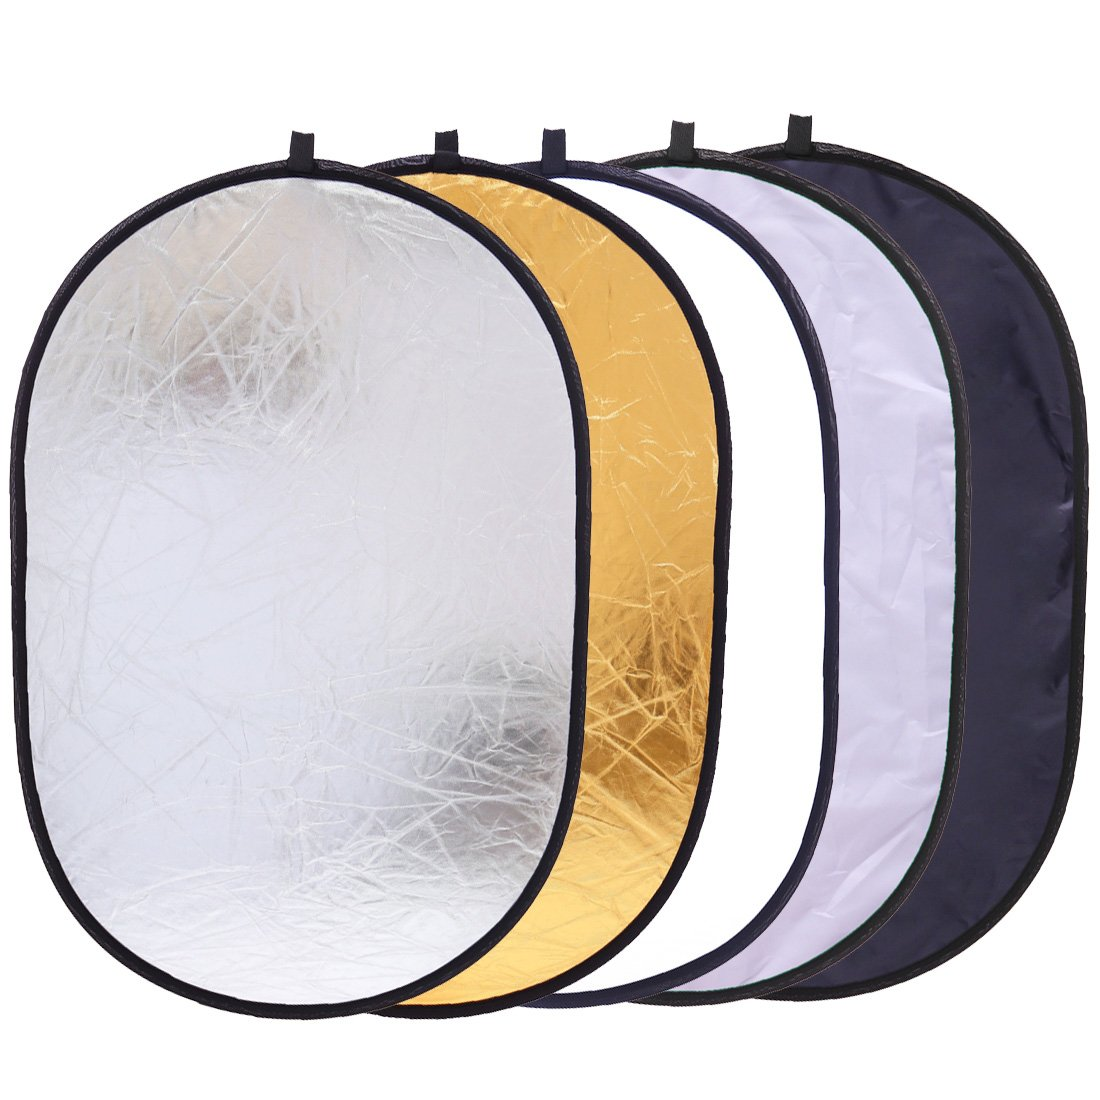 5-in-1 Reflector Photography 35'' x 47'' Photo Studio Portable Collapsible Oval Large Light Reflectors/Diffuser Accessories Kit with Carrying Case for Outdoor Camera Vedio Lighting by Konseen